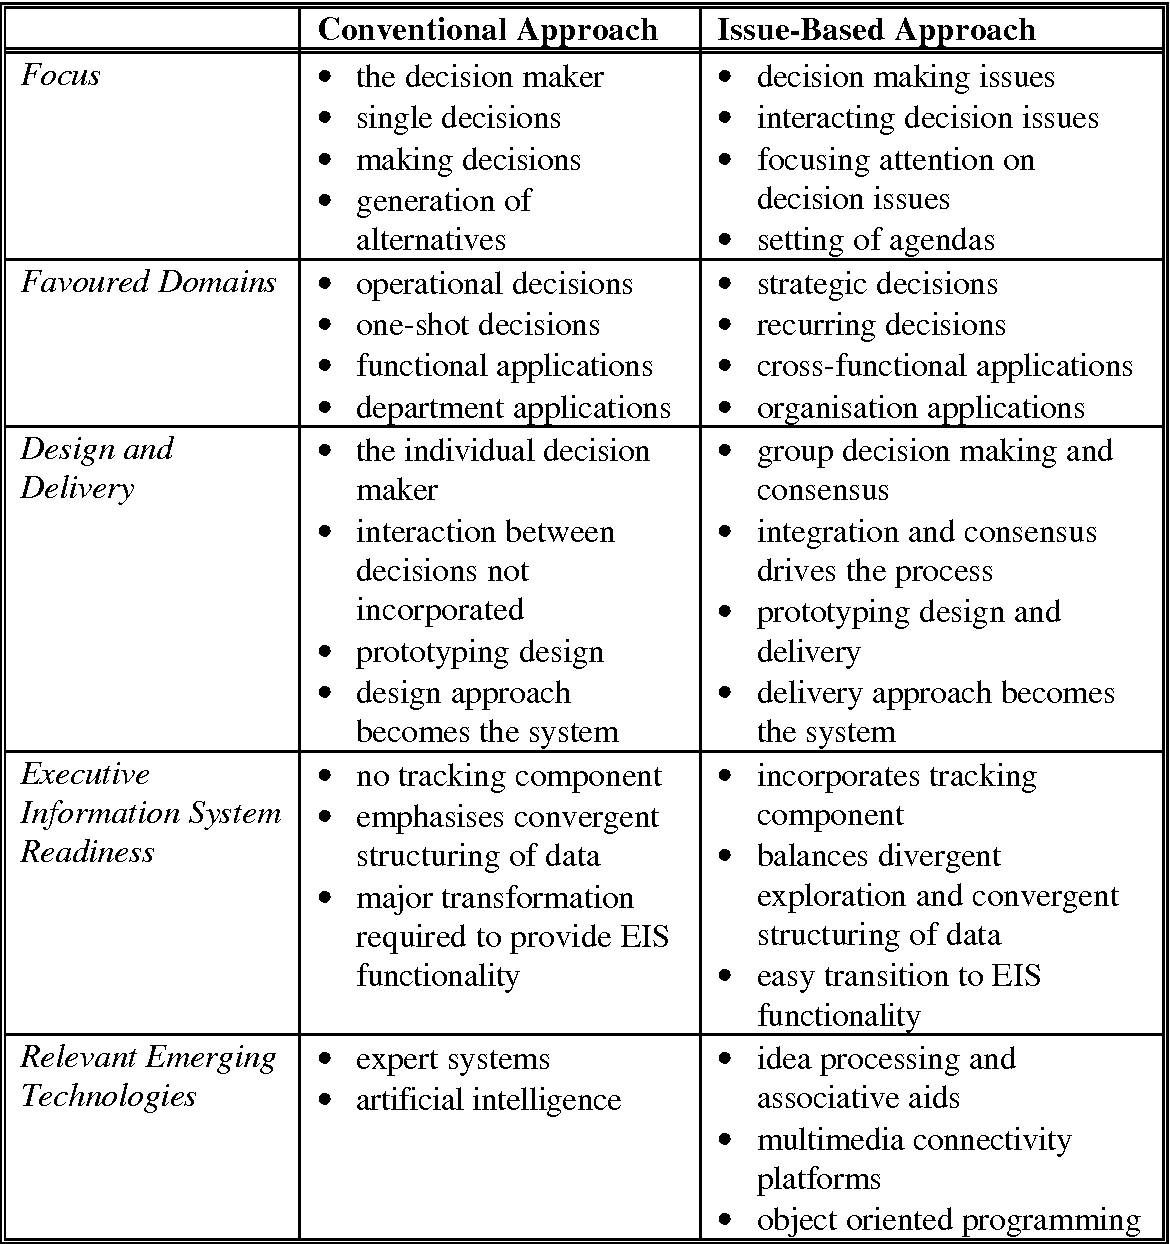 Table 1 From Information Systems For Public Sector Management Working Paper Series Paper No 3 Decision Support Systems And Strategic Public Sector Decision Making In Egypt Sherif Kamel Semantic Scholar